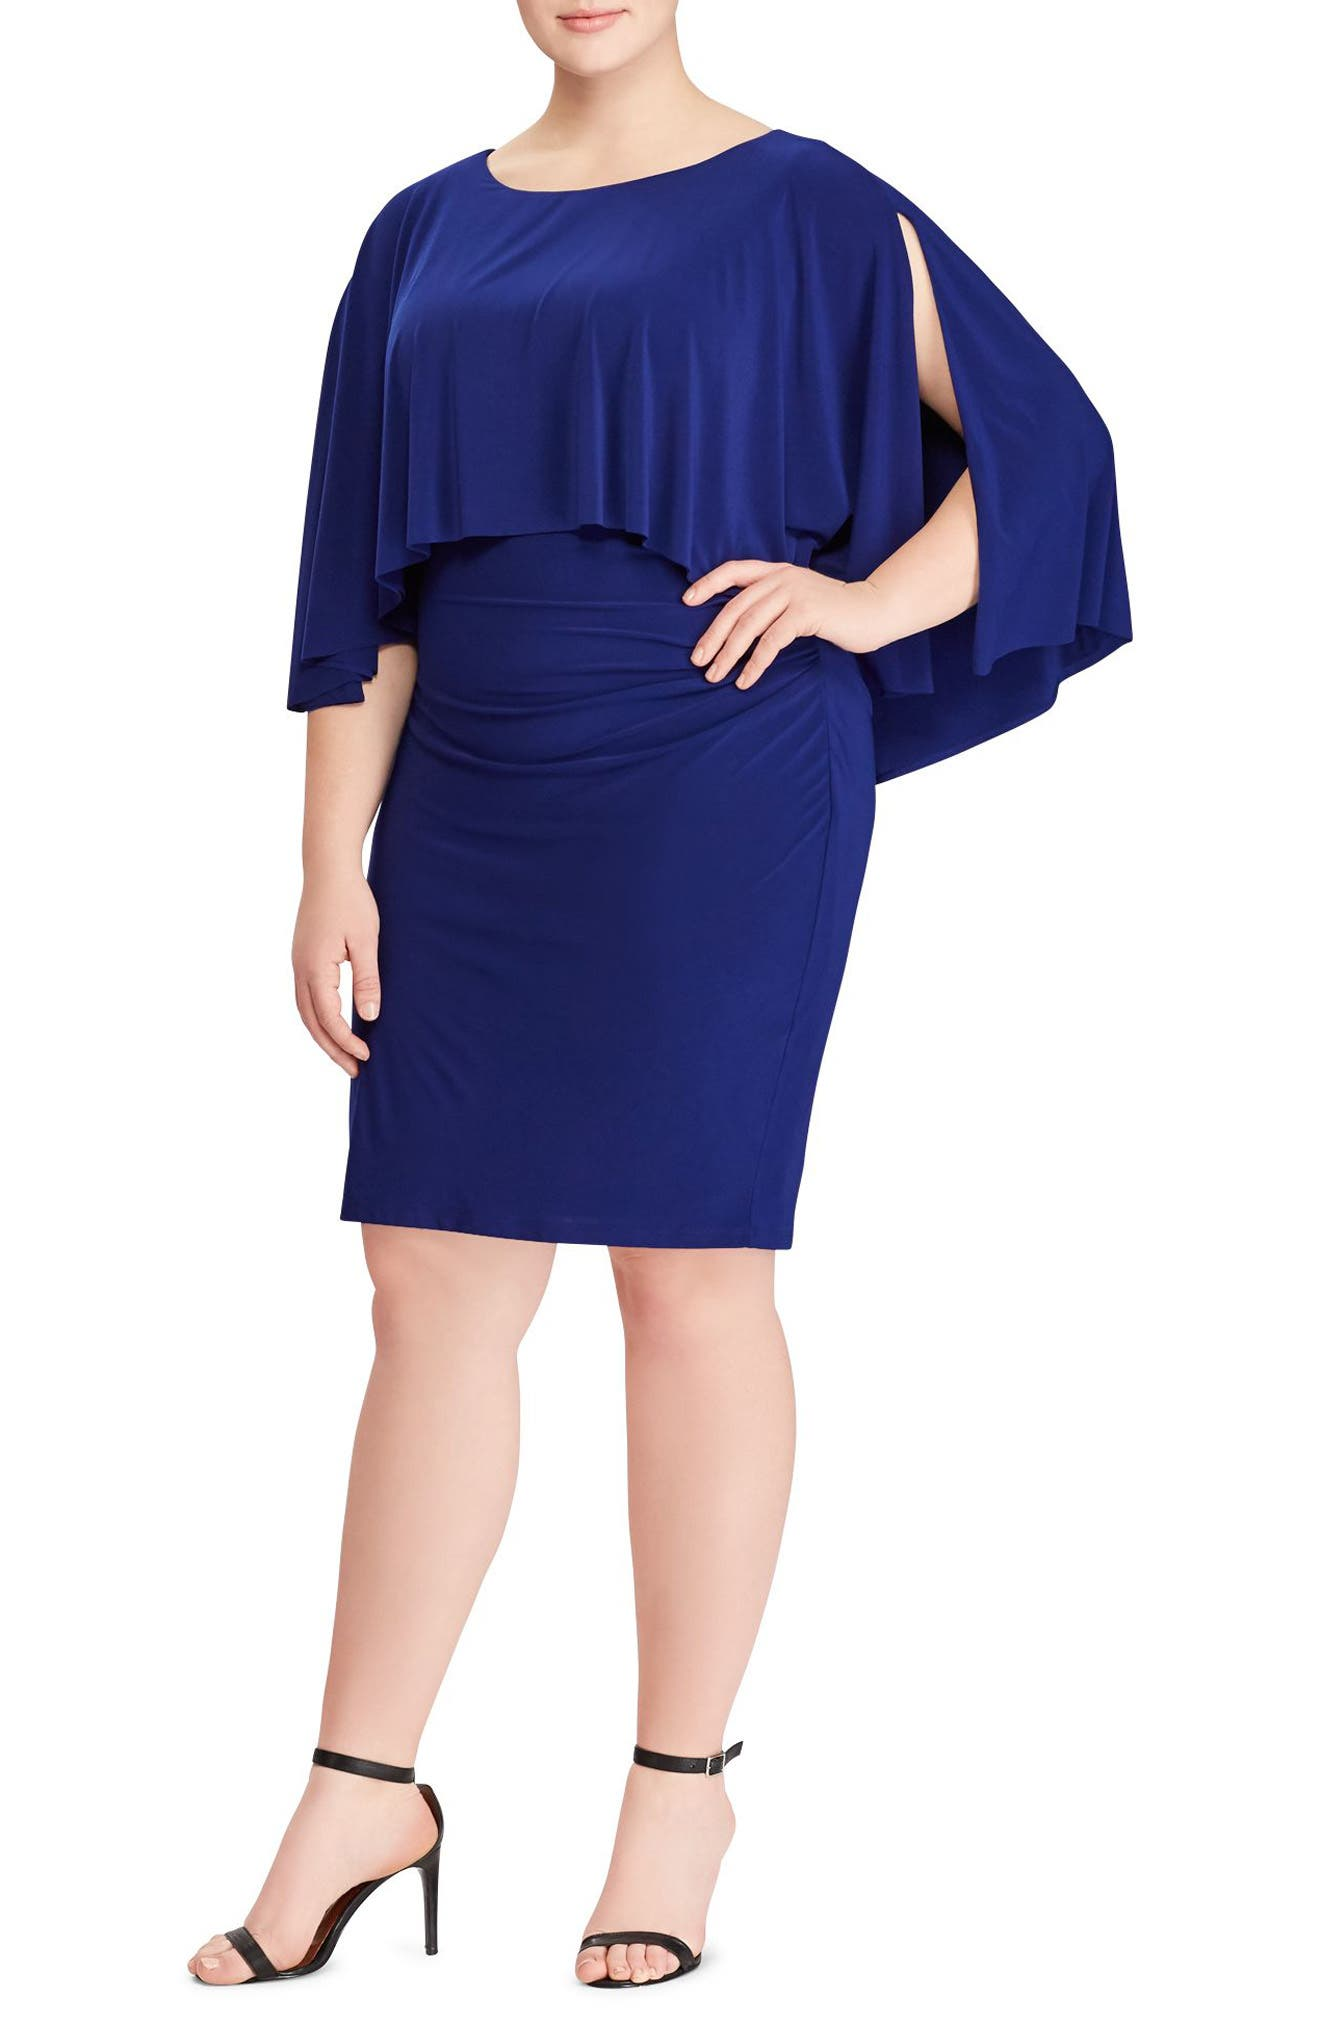 Abriella Cape Sheath Dress,                             Main thumbnail 1, color,                             400